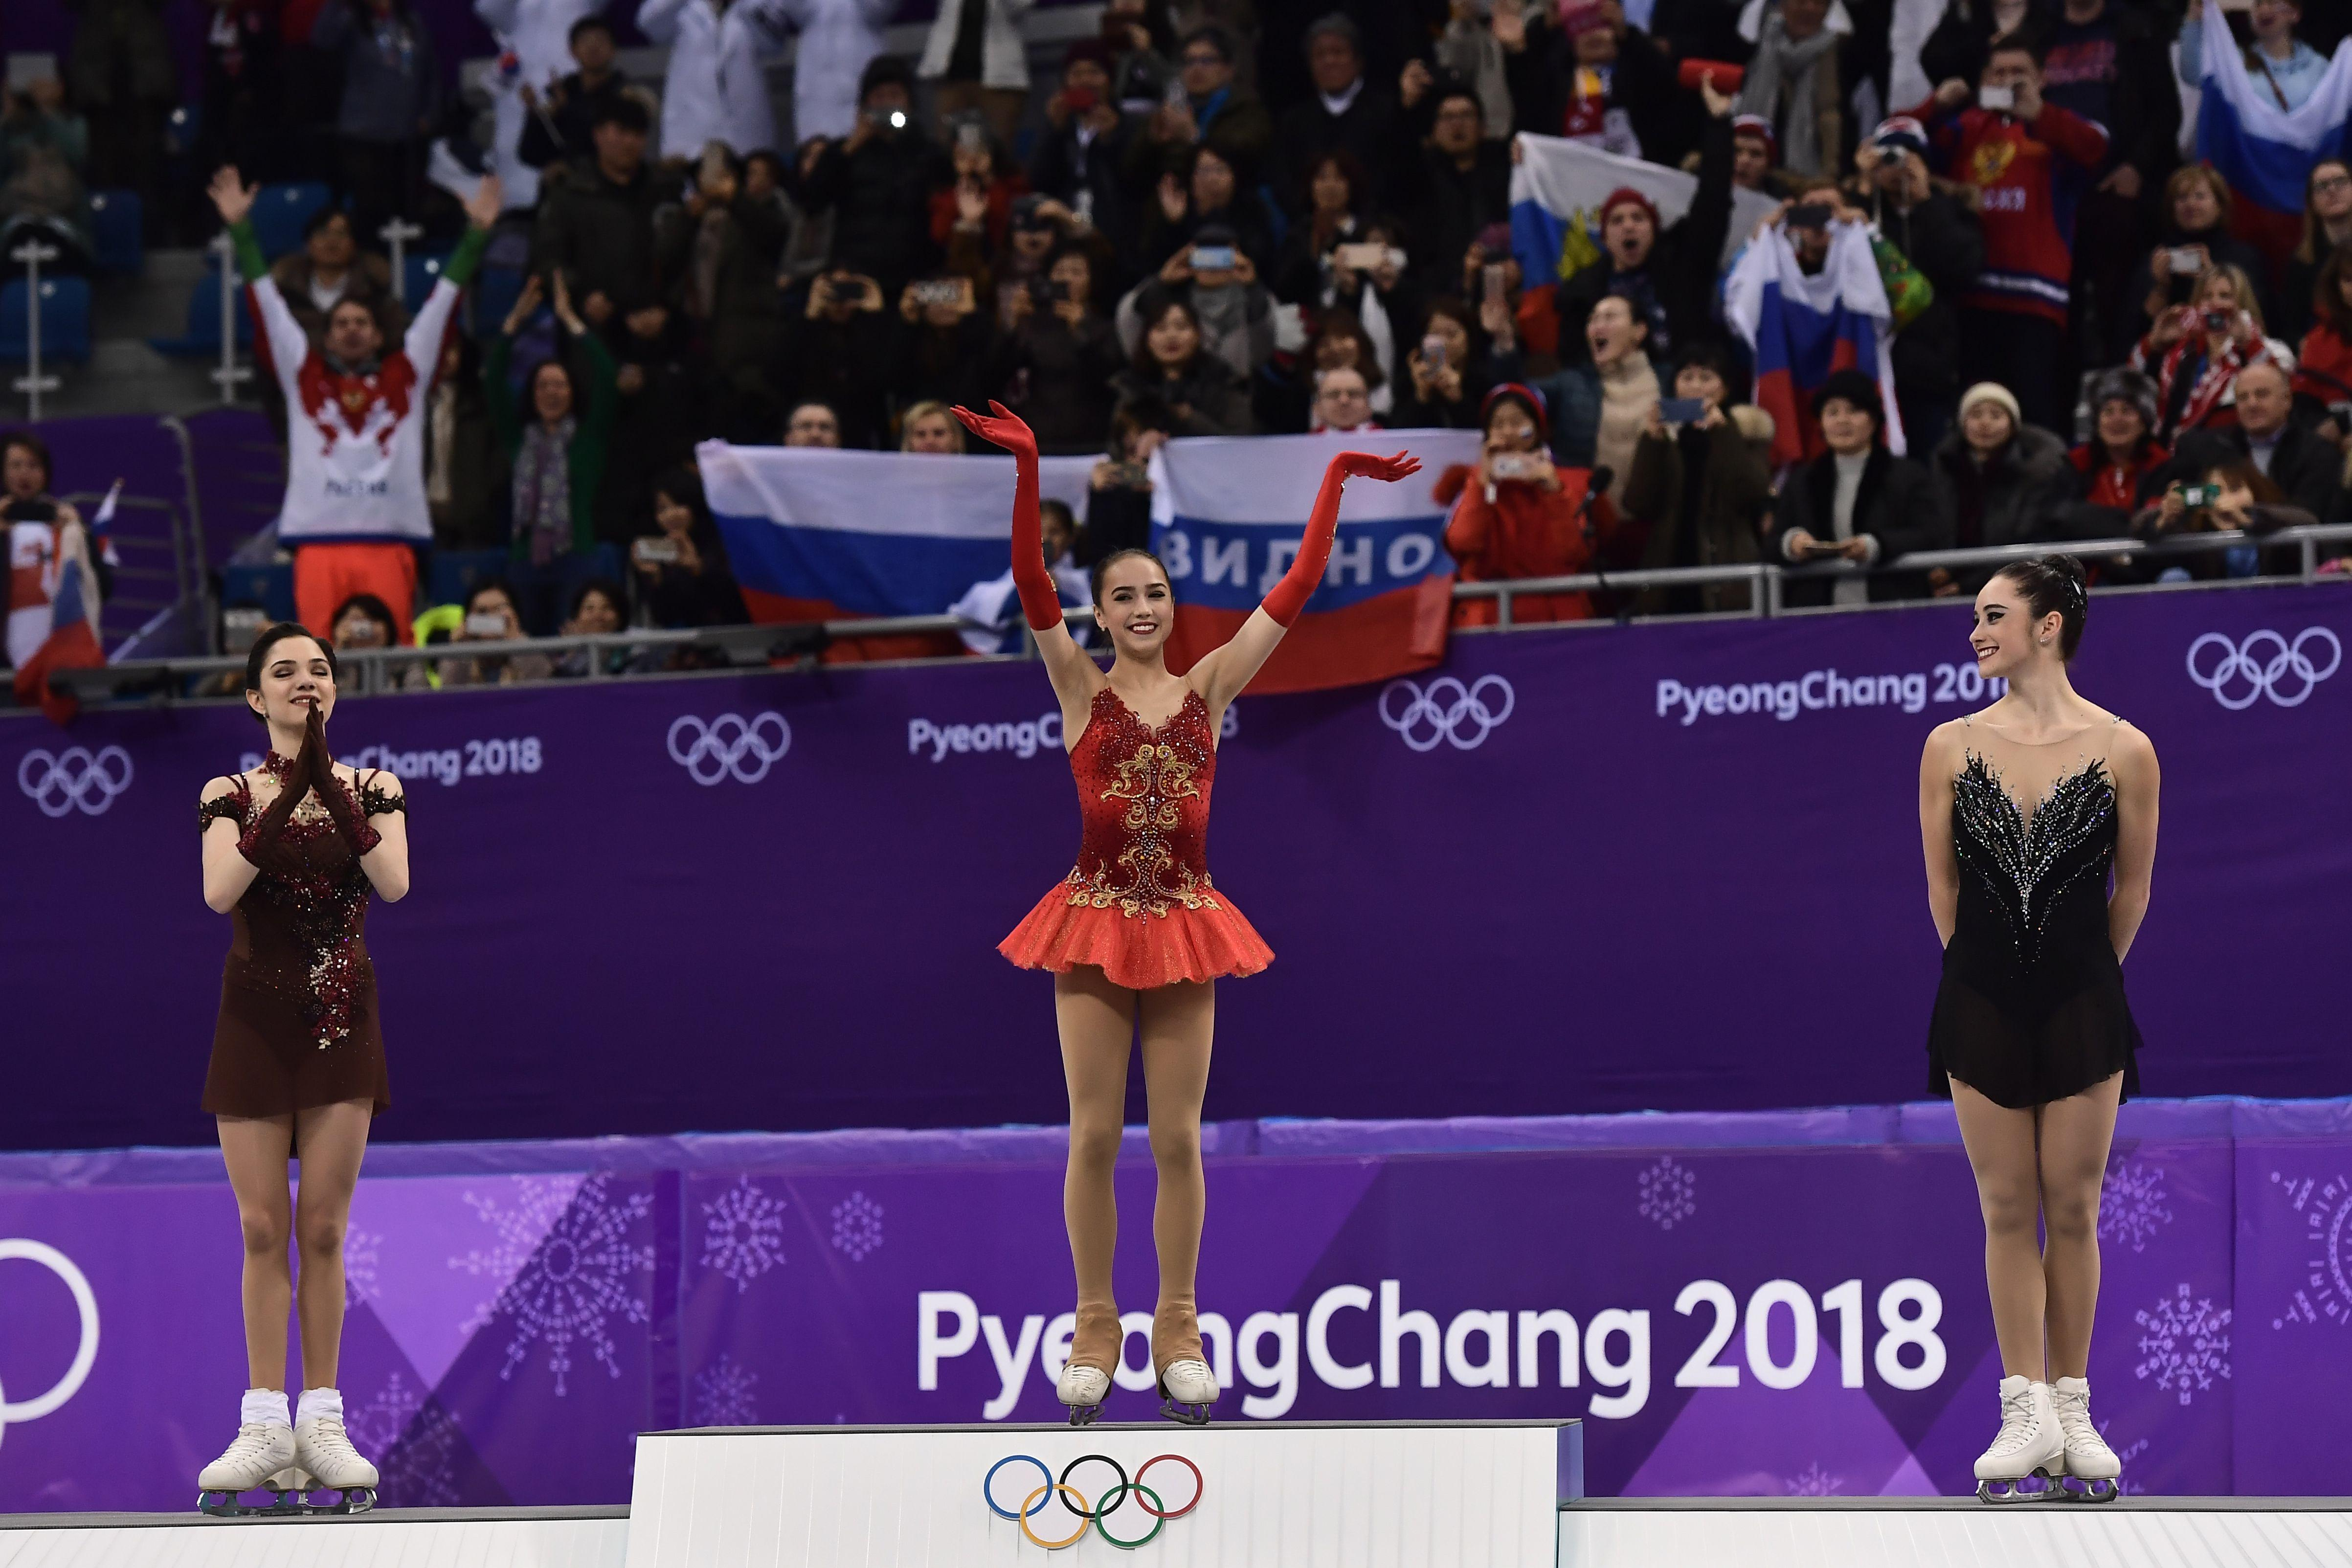 (L-R) Silver medallist Russia's Evgenia Medvedeva, gold medallist Russia's Alina Zagitova and bronze medallist Canada's Kaetlyn Osmond celebrate on the podium during the venue ceremony after the women's single skating free skating of the figure skating event during the Pyeongchang 2018 Winter Olympic Games at the Gangneung Ice Arena in Gangneung on February 23, 2018. / AFP PHOTO / ARIS MESSINIS        (Photo credit should read ARIS MESSINIS/AFP/Getty Images)